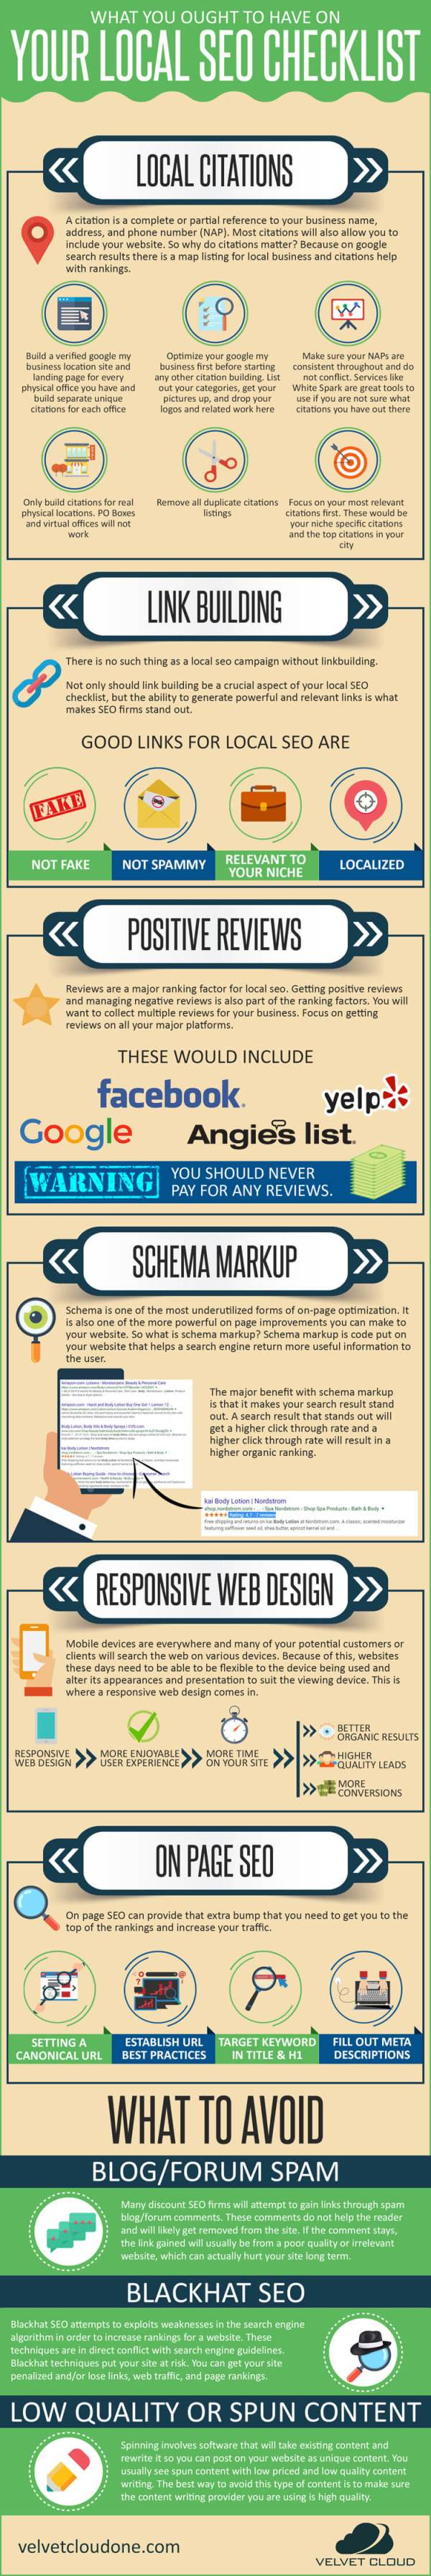 Local_SEO_Checklist_05